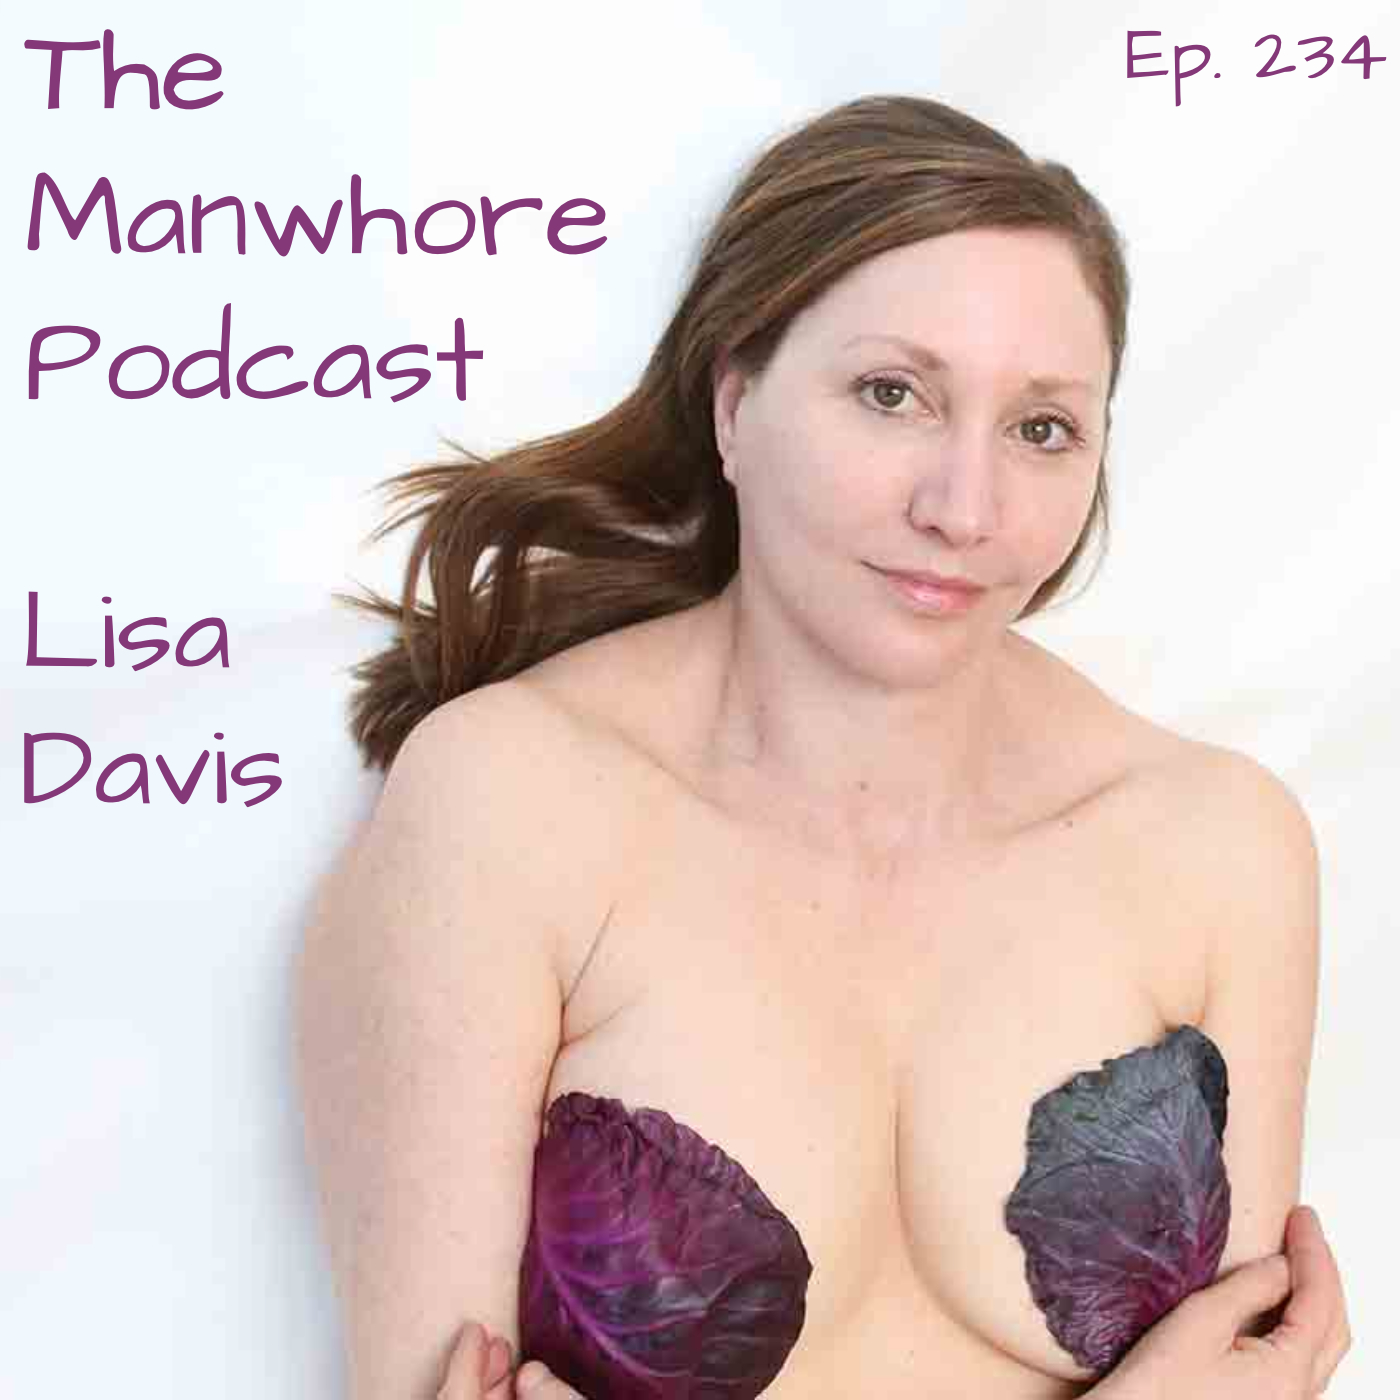 The Manwhore Podcast: A Sex-Positive Quest - Ep. 234: Clean Eating and Dirty Sex with Lisa Davis MPH